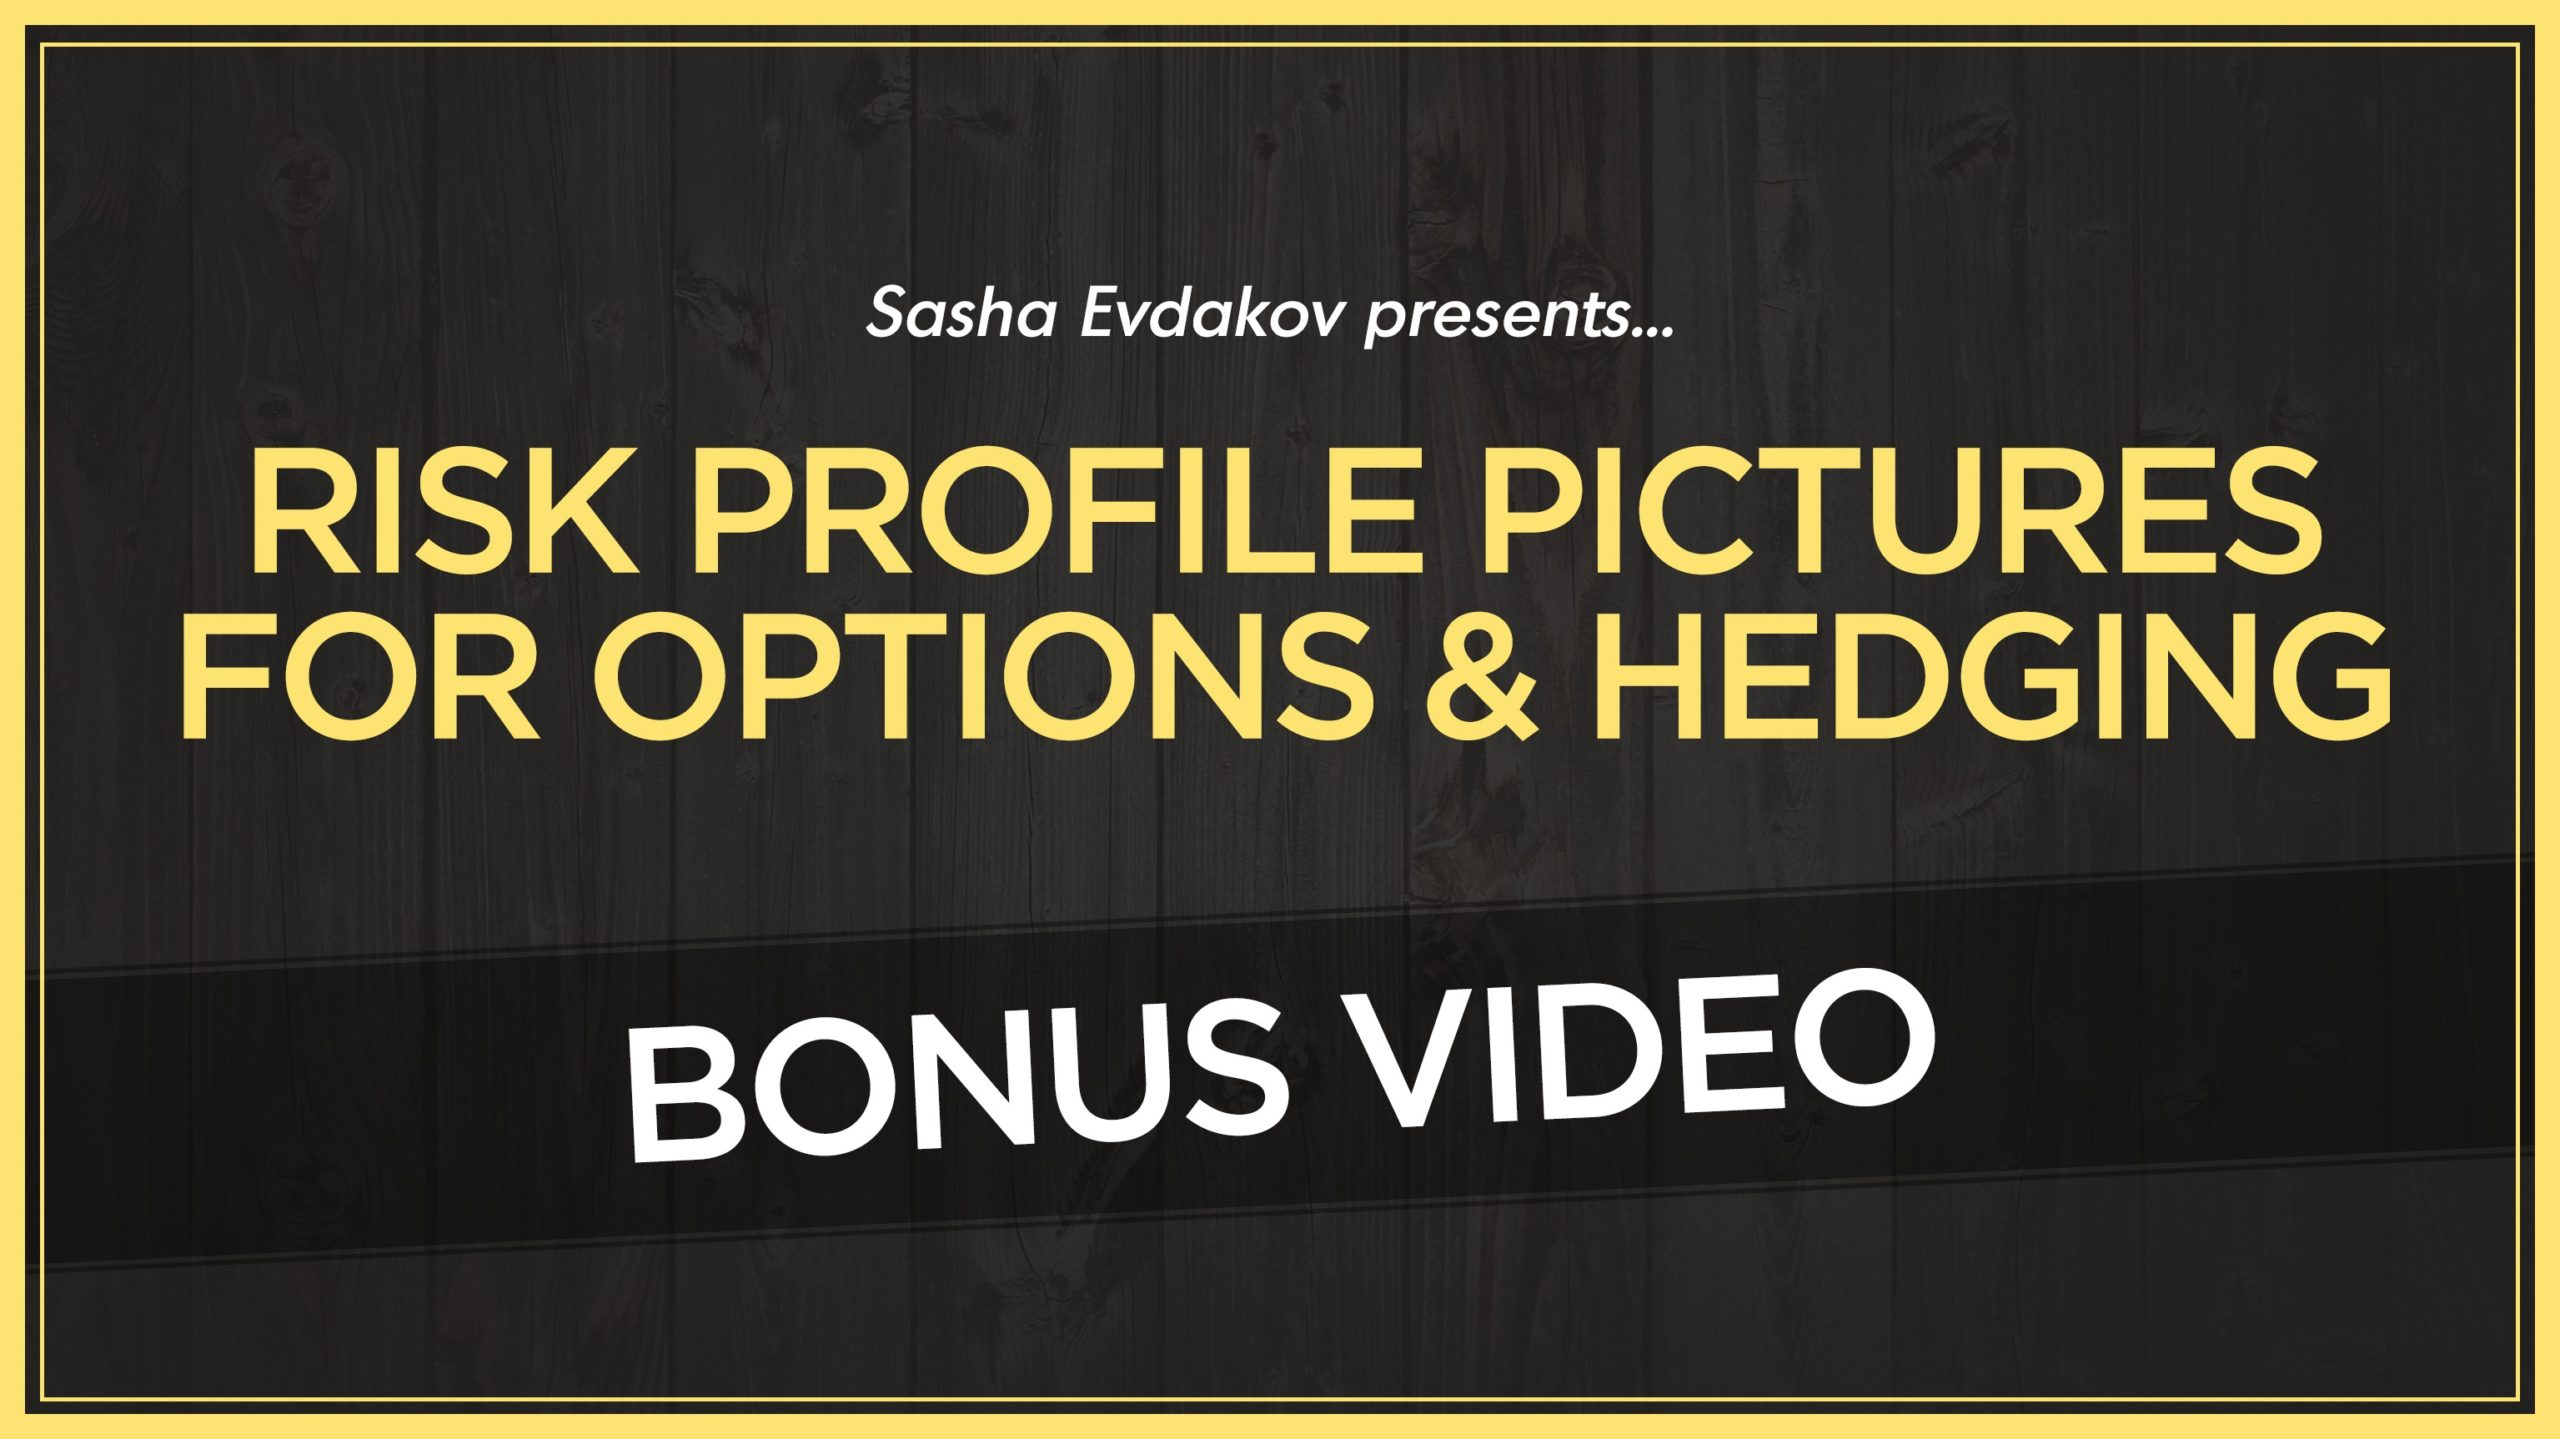 Risk Profile Pictures for Options & Hedging Thumbnail for Bonus Video